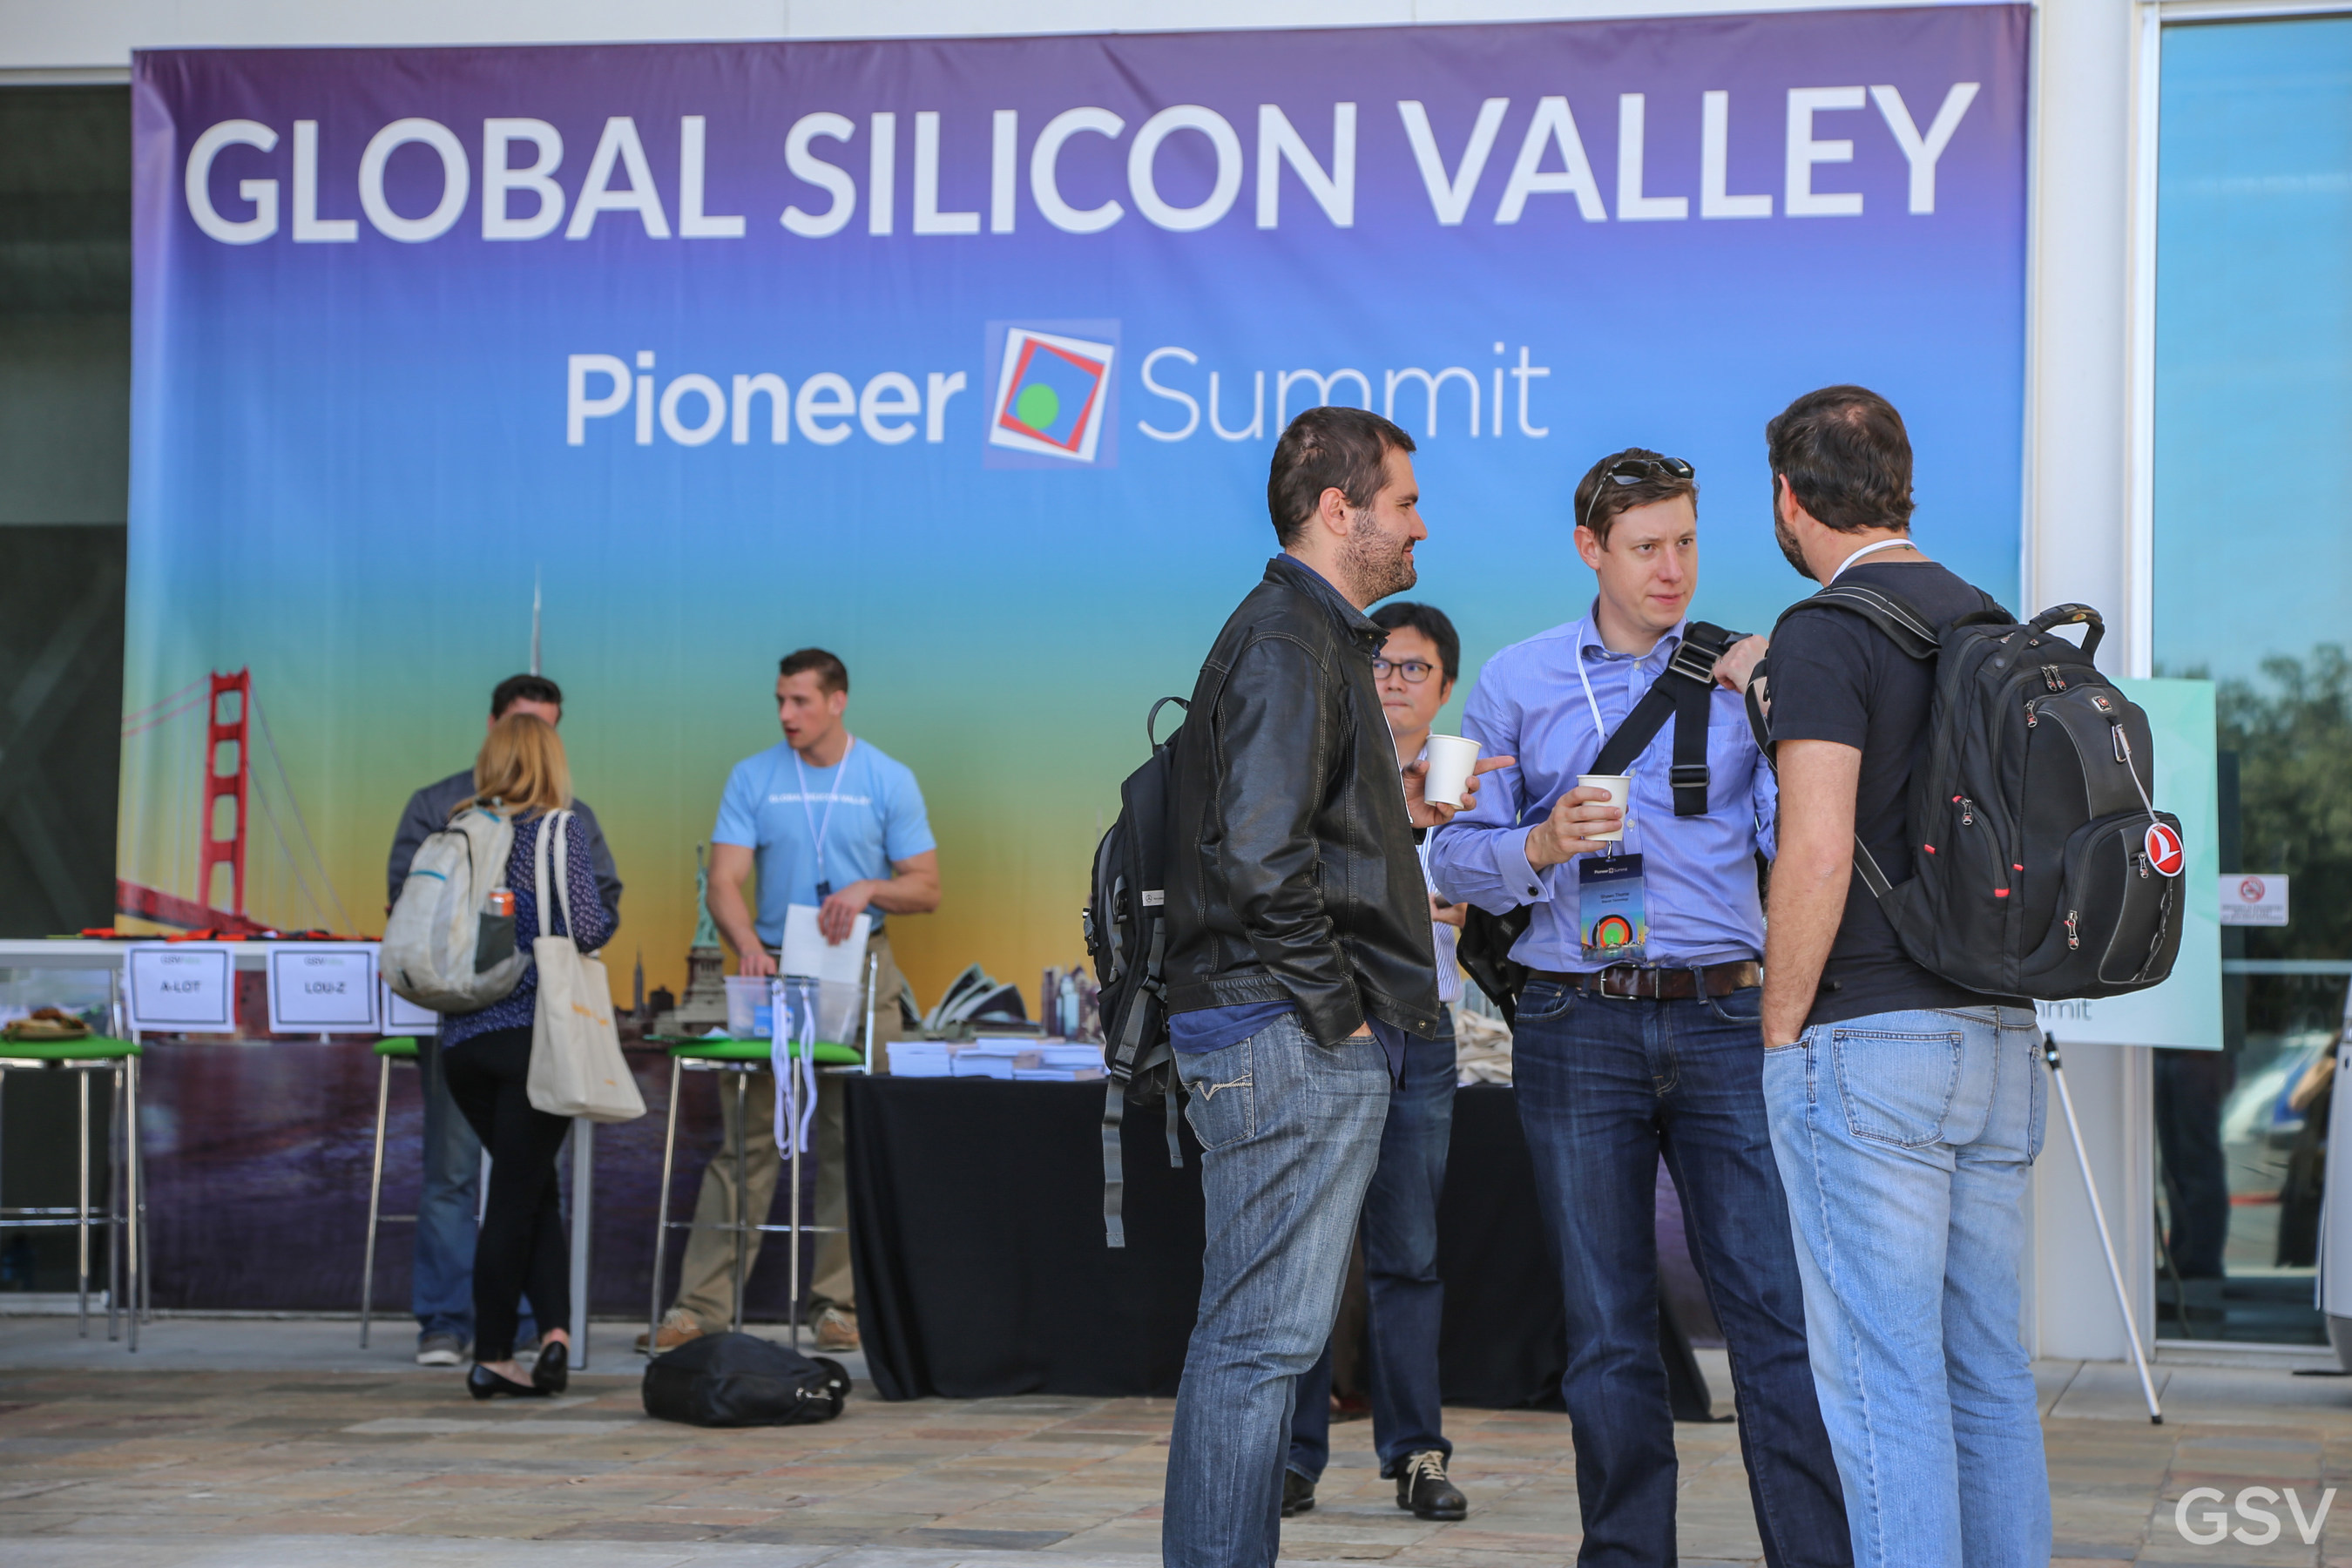 Registration is open for the 2016 Global Silicon Valley Pioneer Summit, scheduled for September 14-15, on the Redwood City, CA campus of Global Silicon Valley Labs.